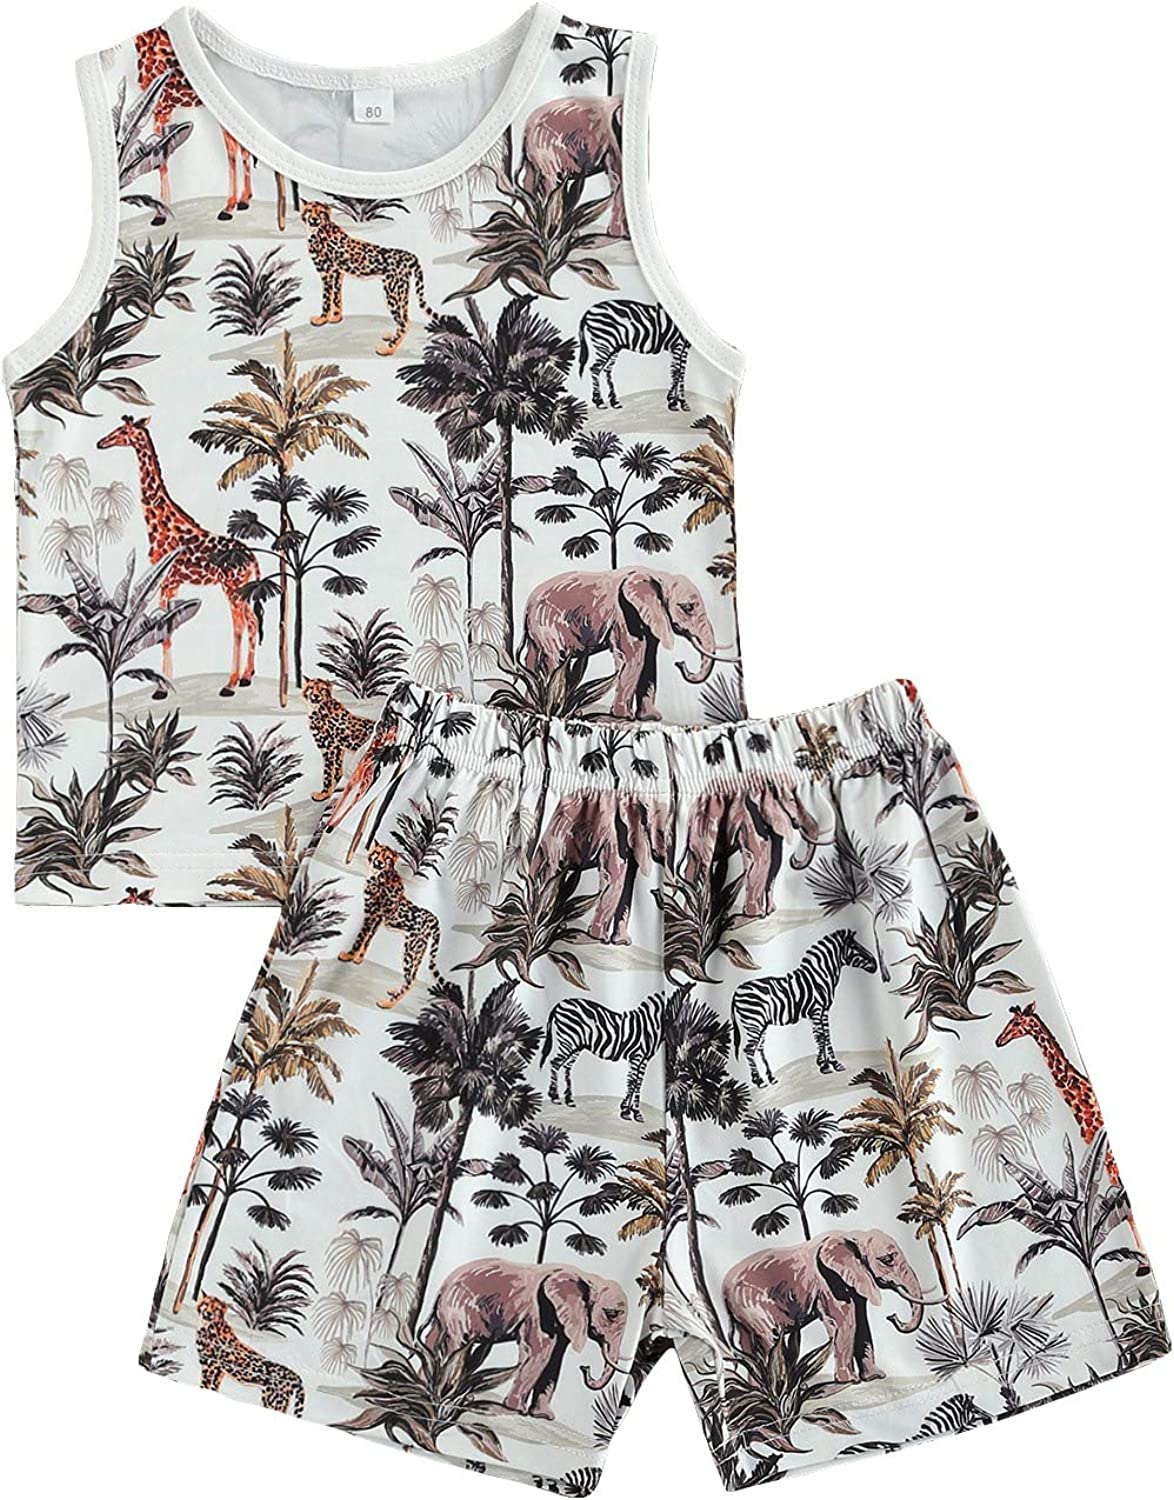 Toddler Baby Boys Summer Outfits Forest Animal Print Sleeveless Tank Tops + Casual Shorts 2Pcs Clothing Set